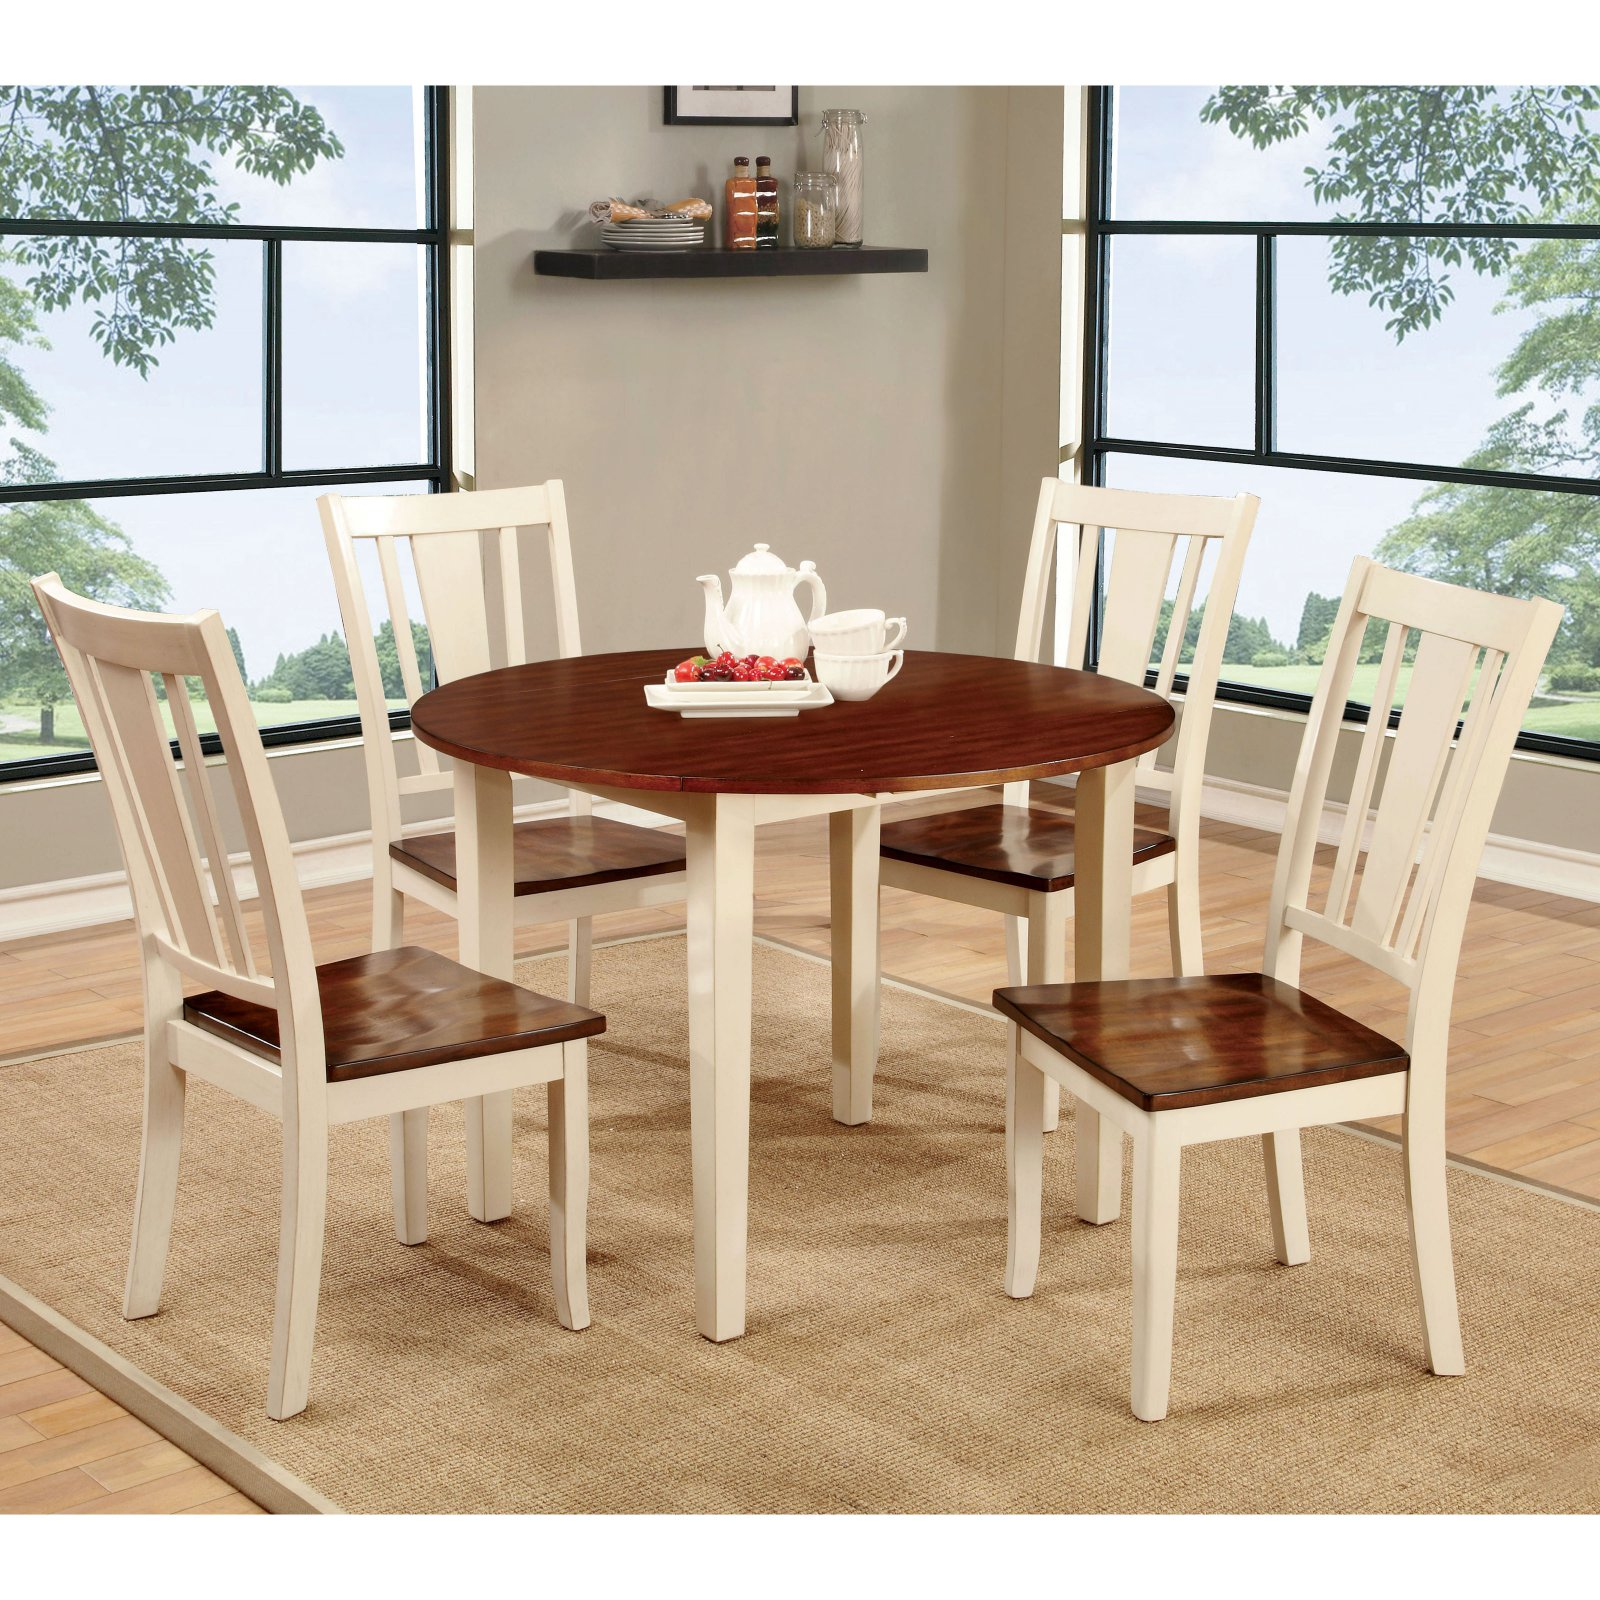 Furniture of America Lohman 5 Piece Dual-Tone Dining Table Set